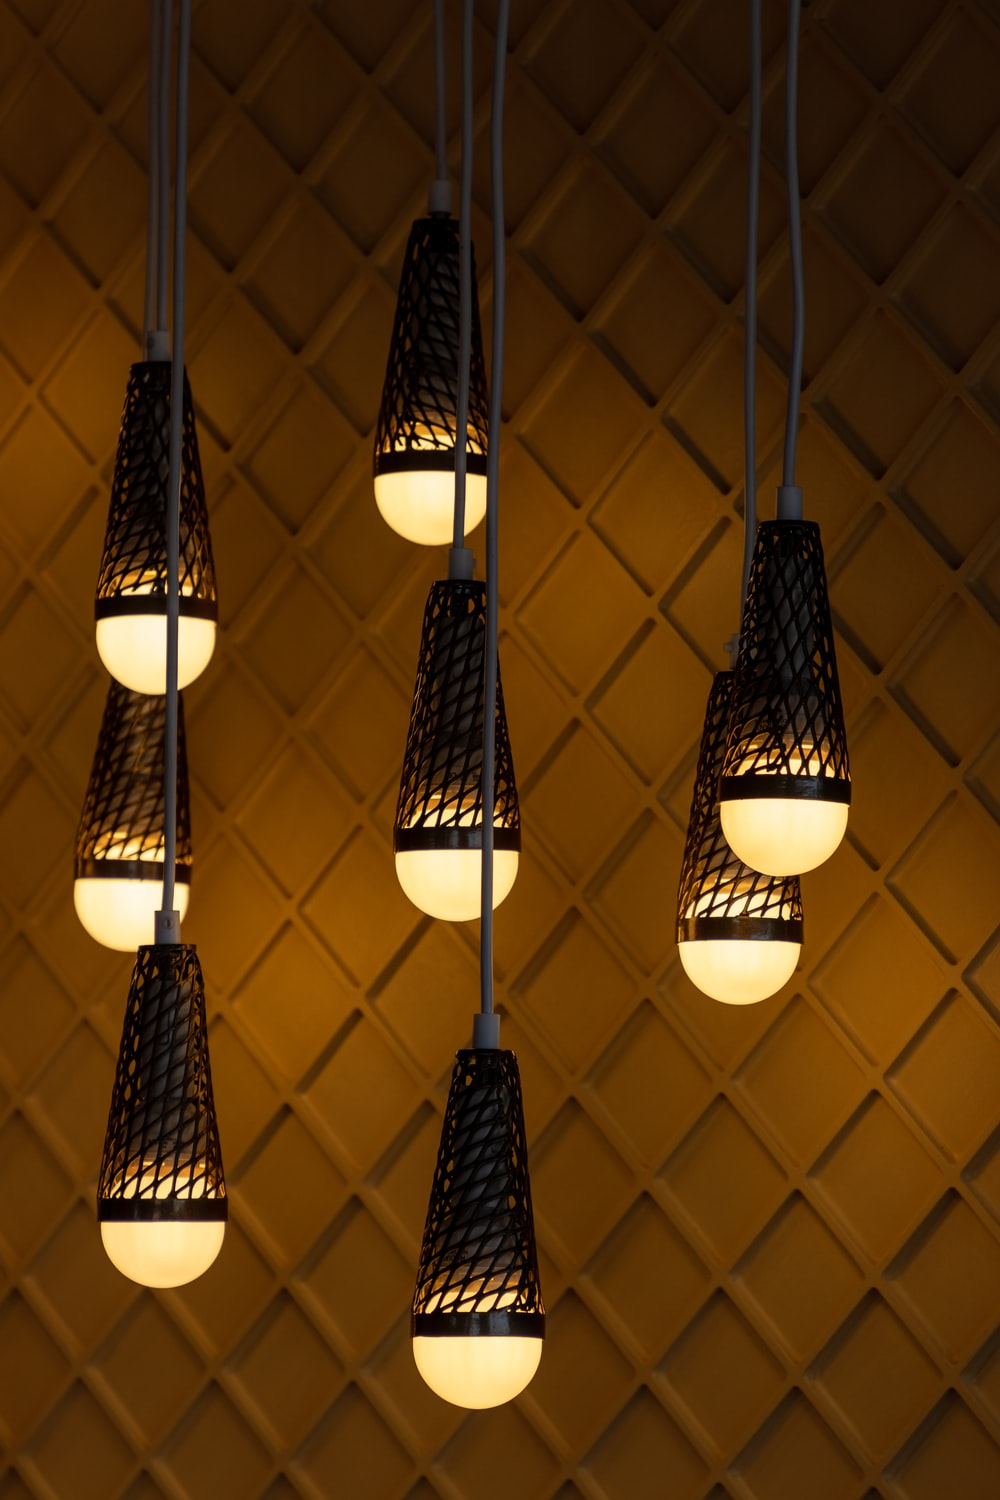 eight pendant lamps turned on